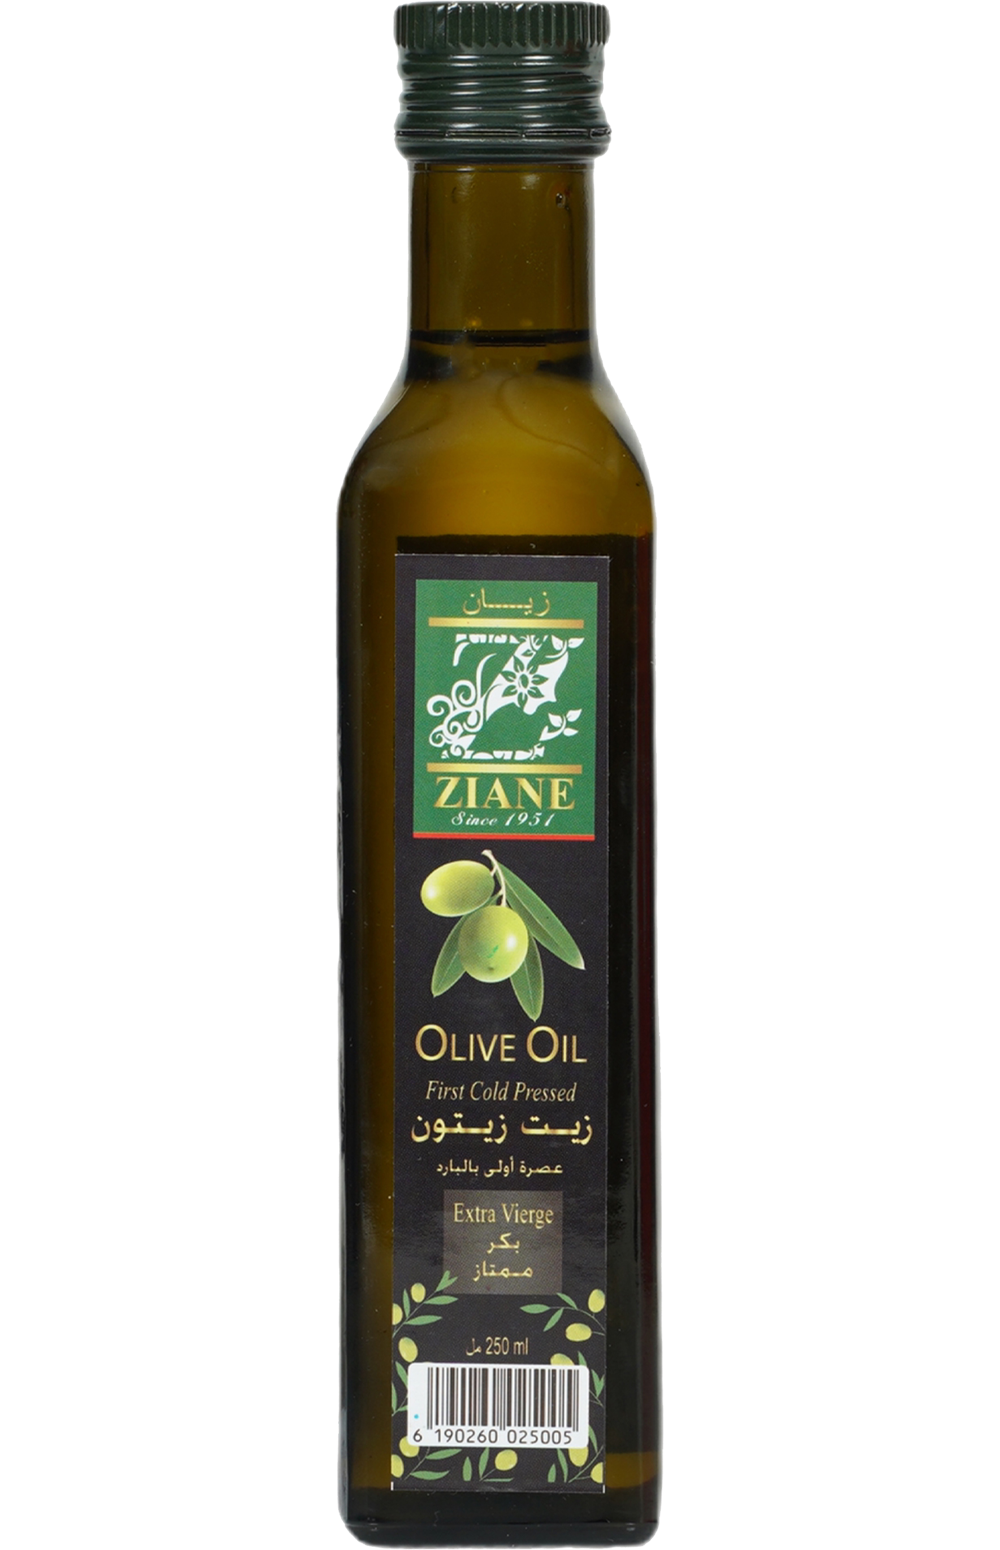 Ziane First Cold Pressed